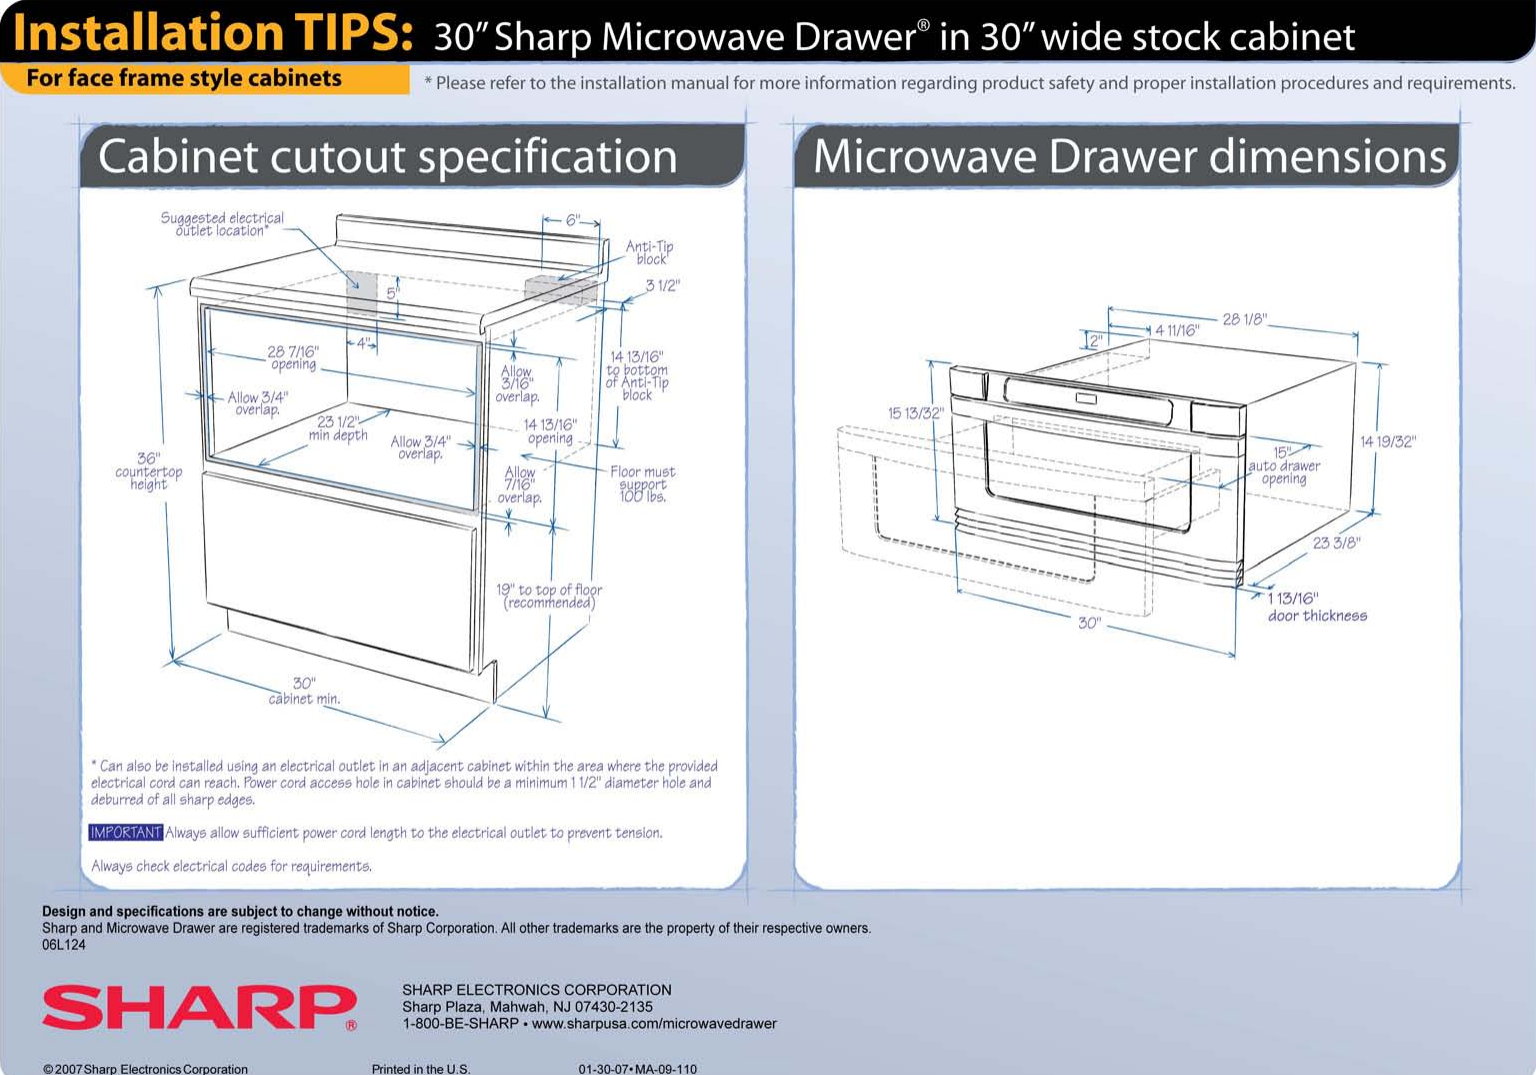 Face Frame Cabinet Microwave Drawer